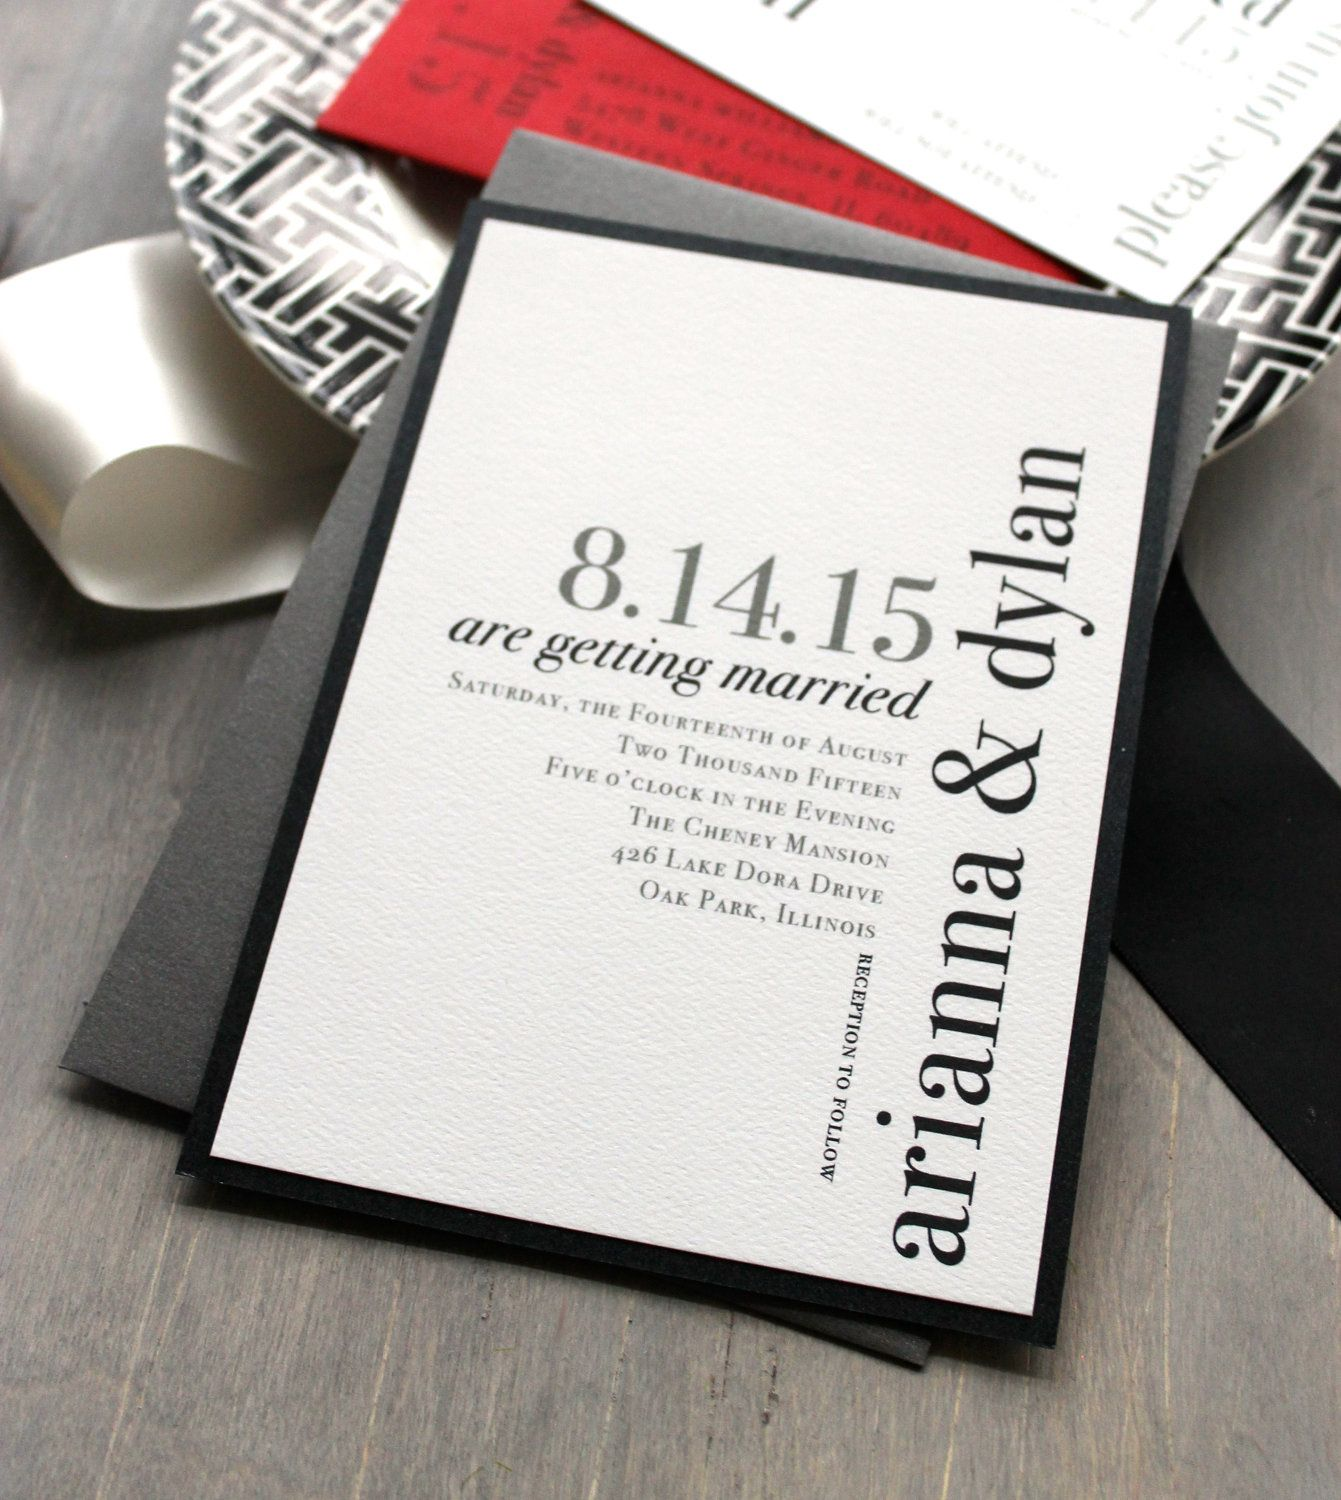 Unique Wedding Invitation Ideas | Pinterest | Unique wedding ...